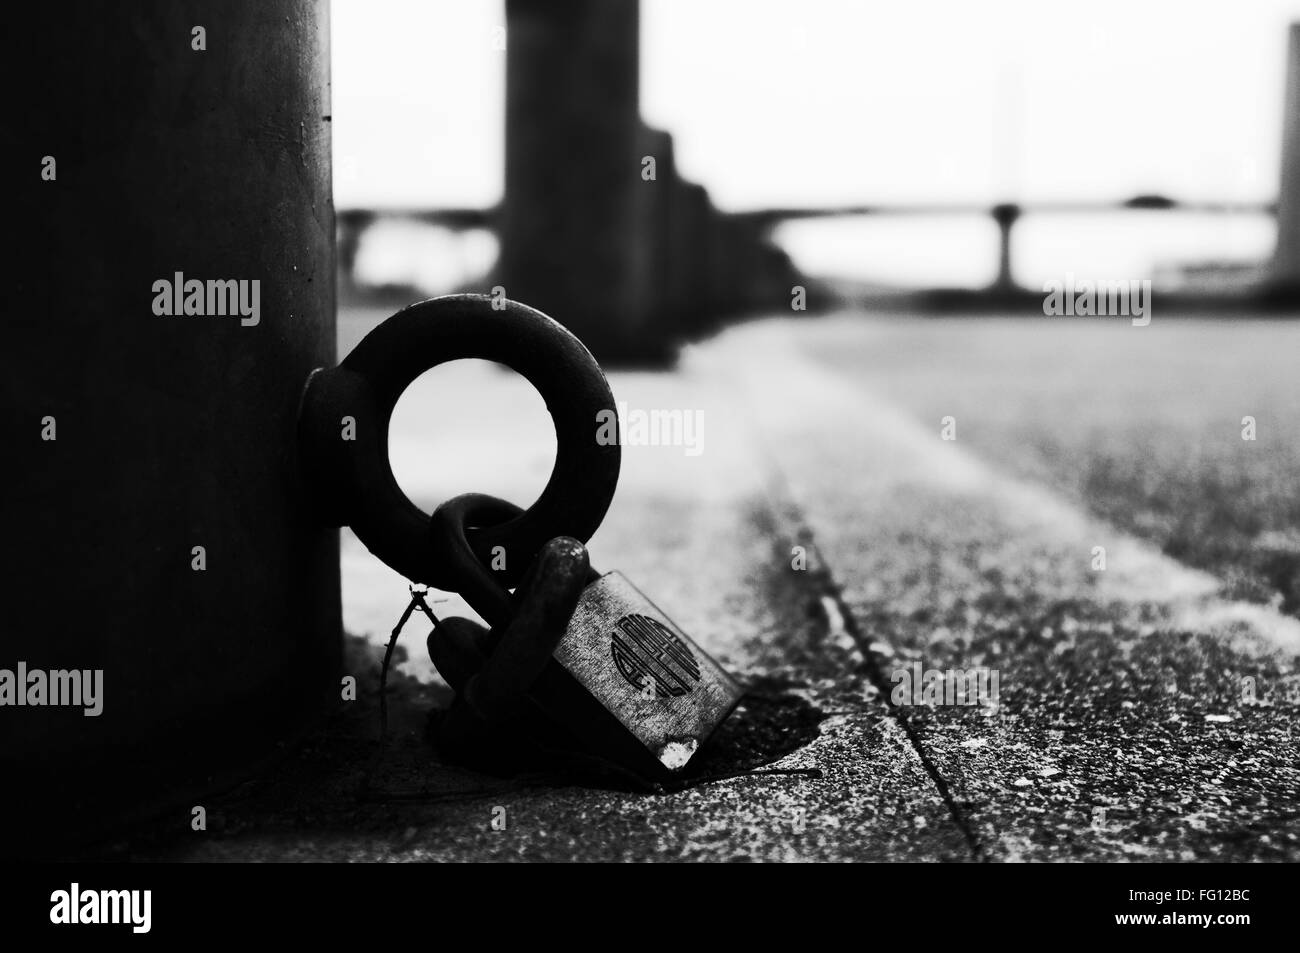 Close-Up Of Padlock Attached To Pole On Wooden Plank - Stock Image